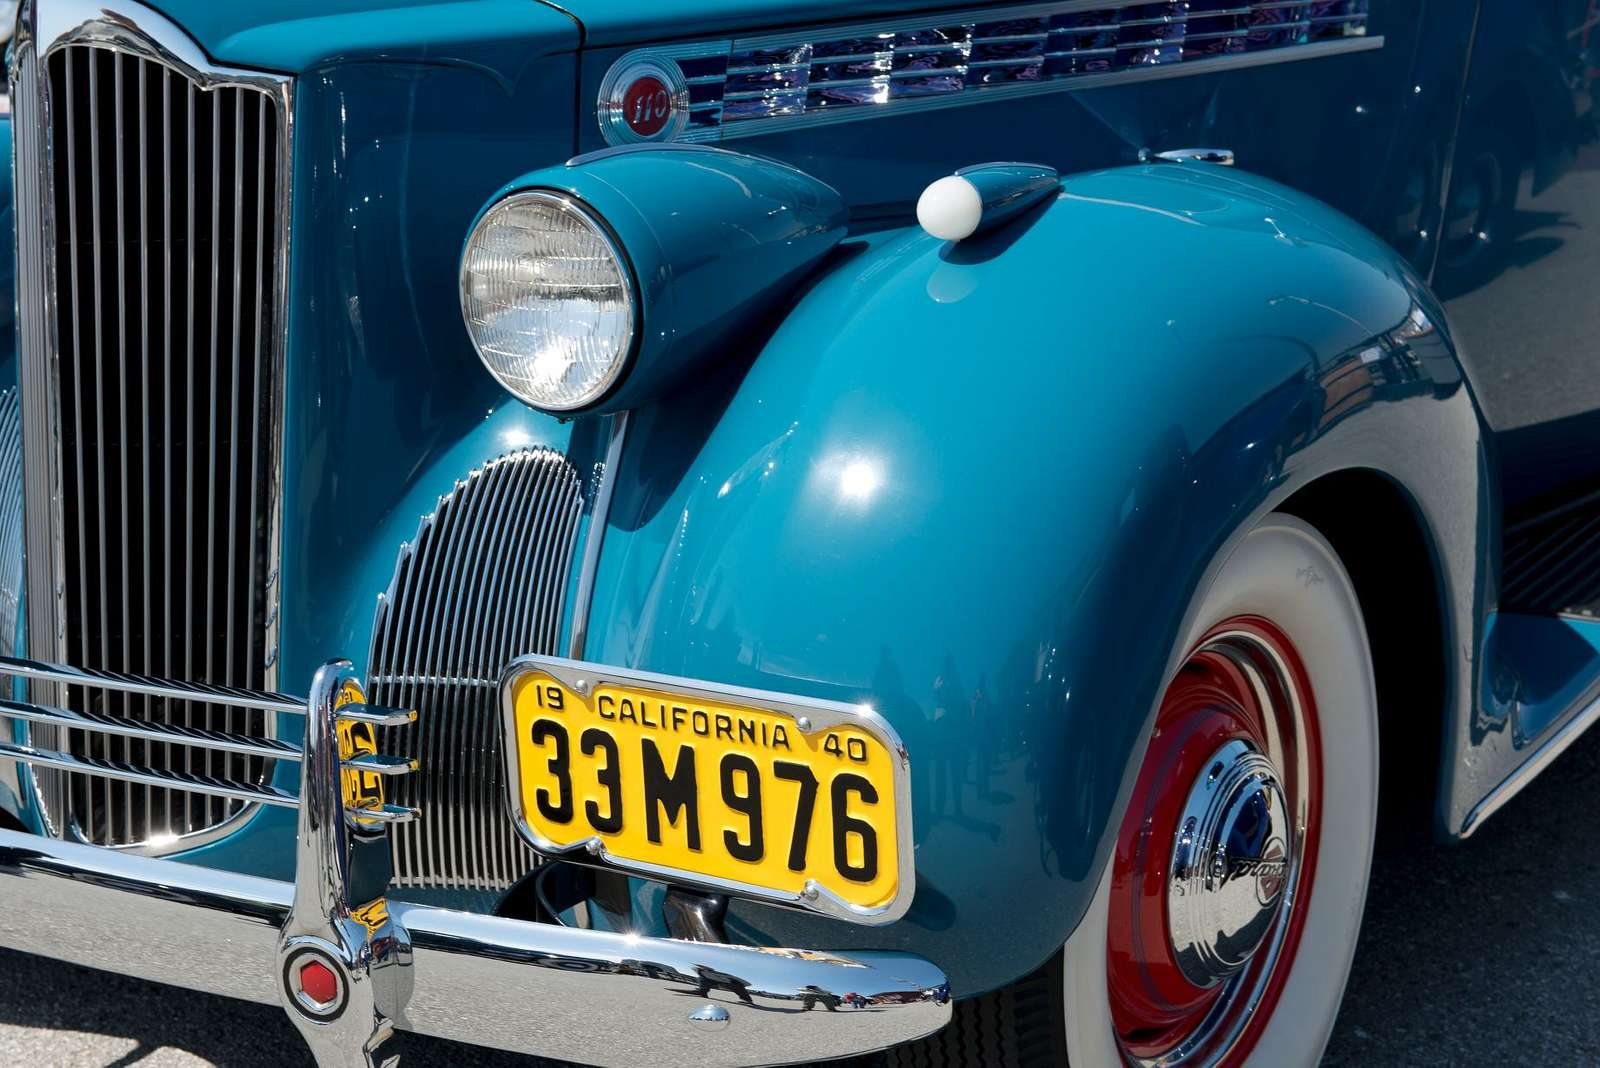 Detail of a historic car with license plates from the 1940s. San Francisco, California